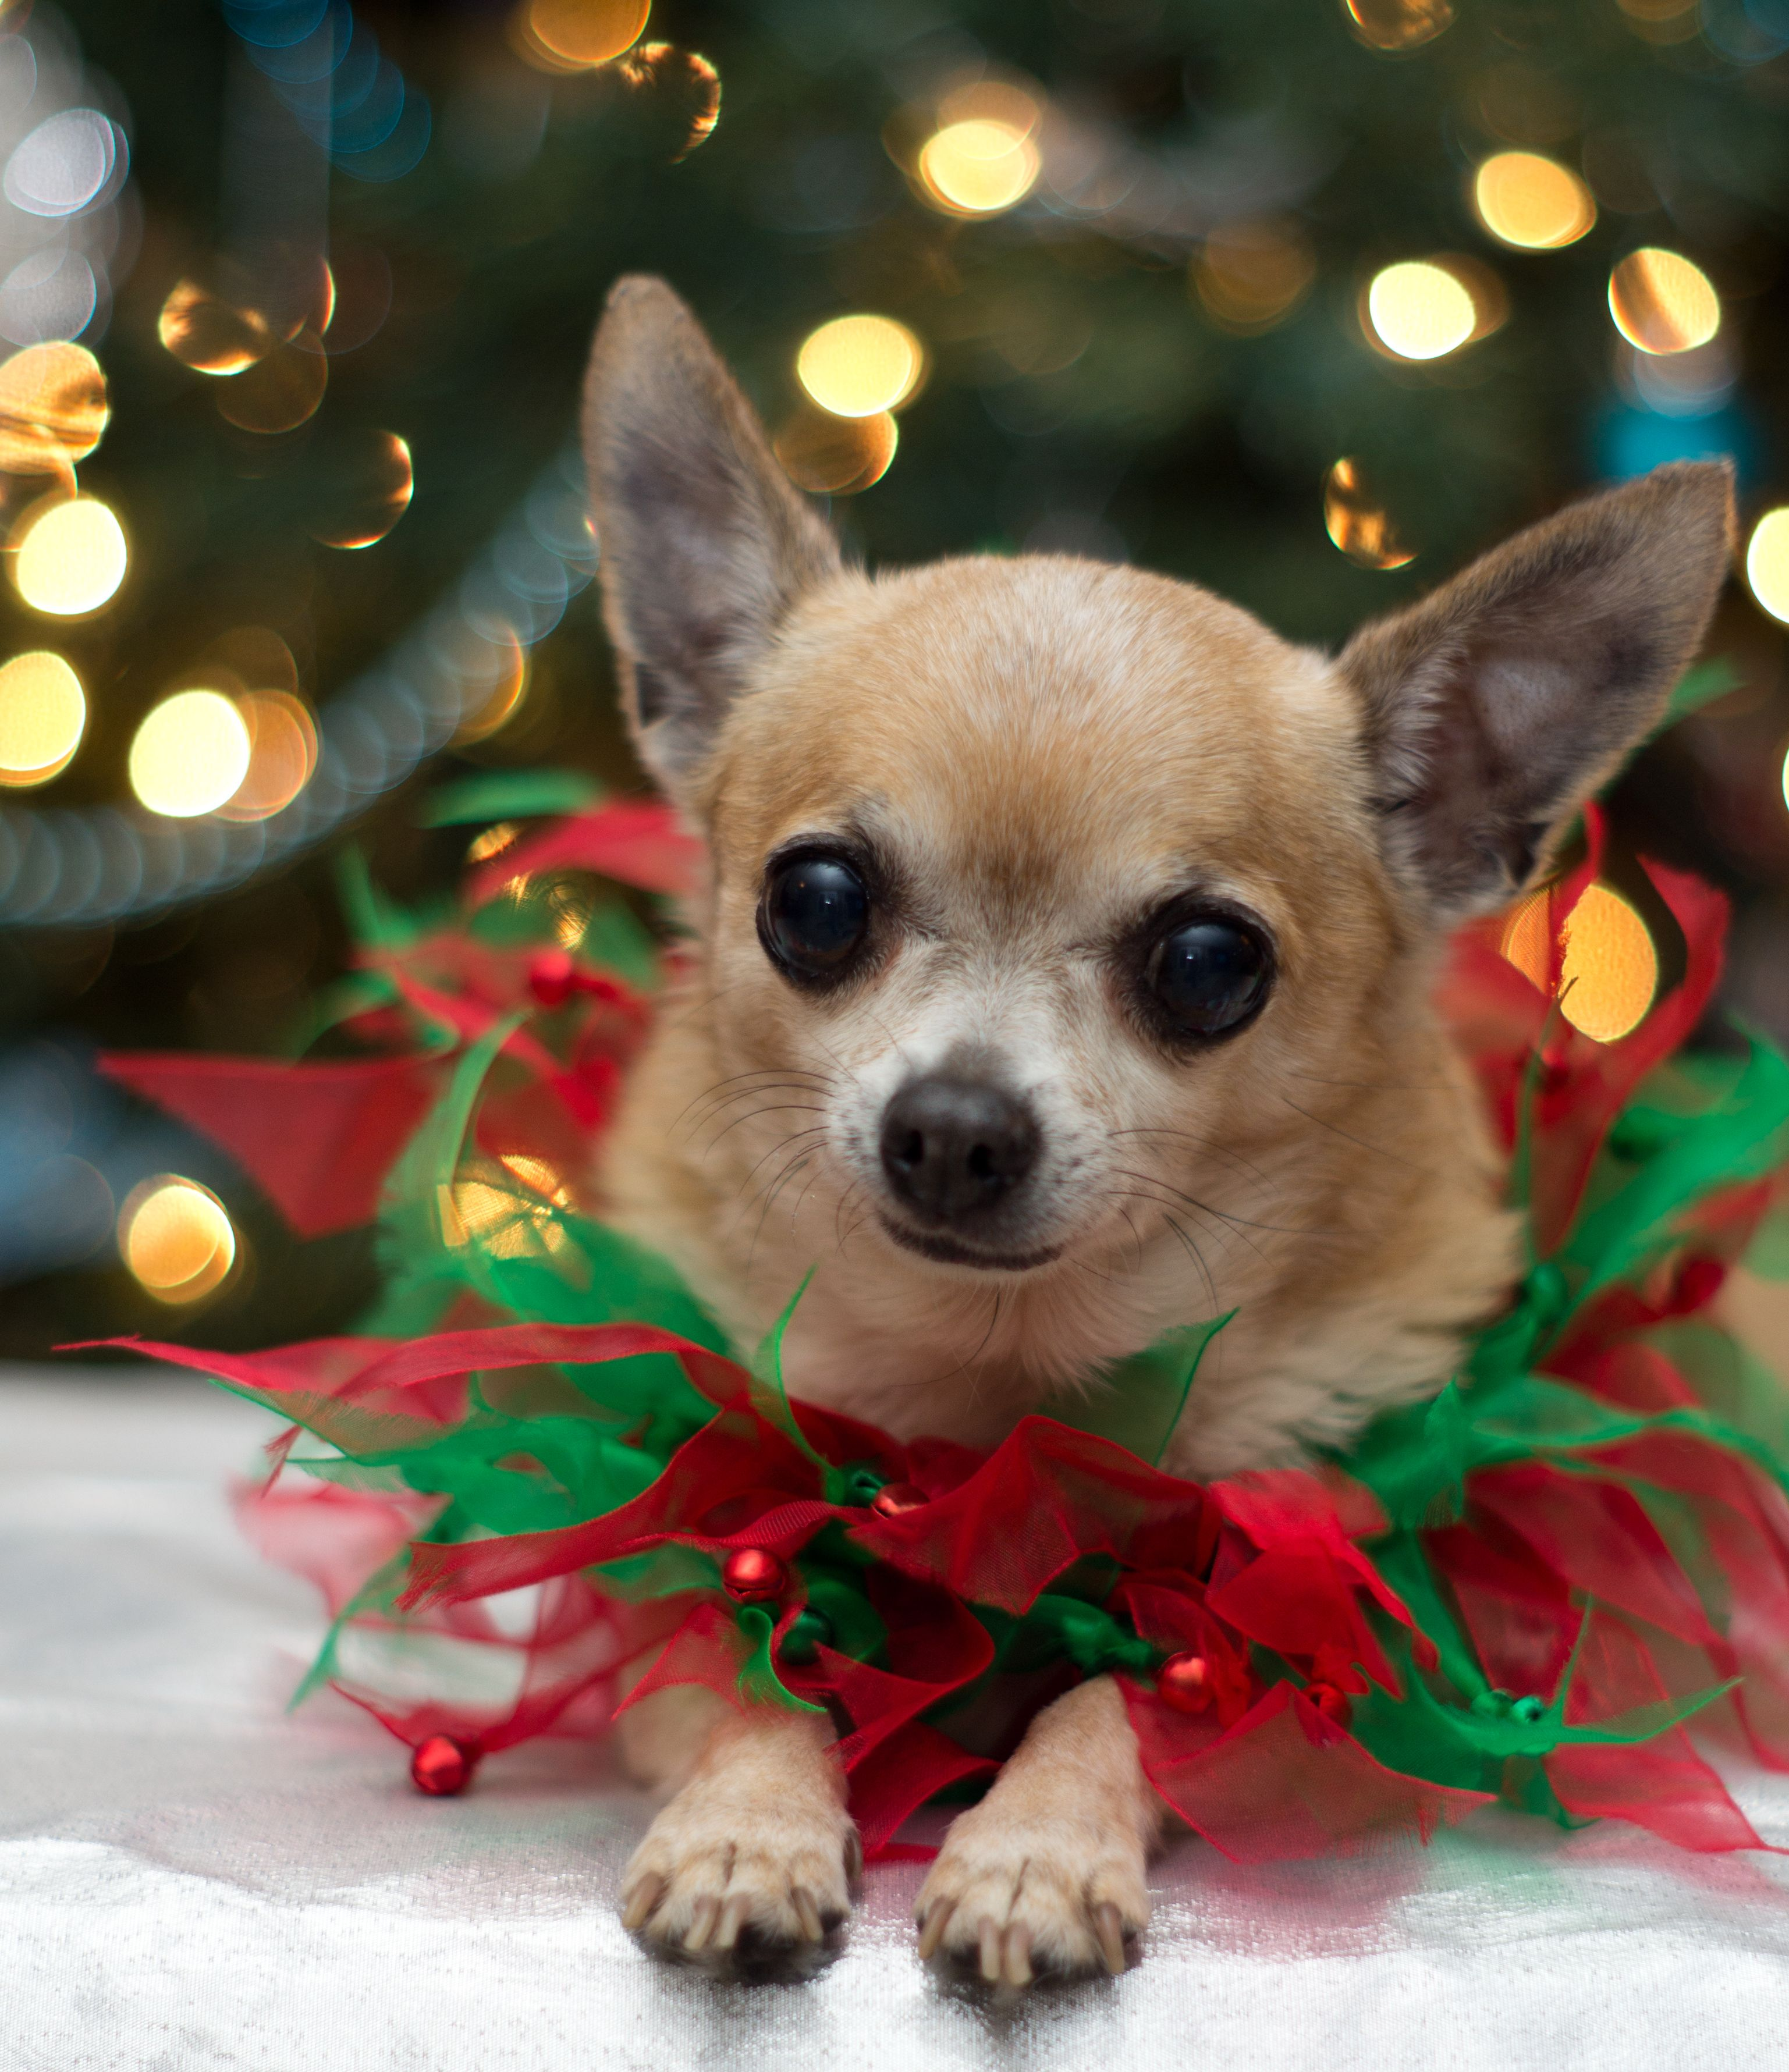 Tiny Christmas Chihuahua Merry Christmas Card Puppy Holiday Dogs ...